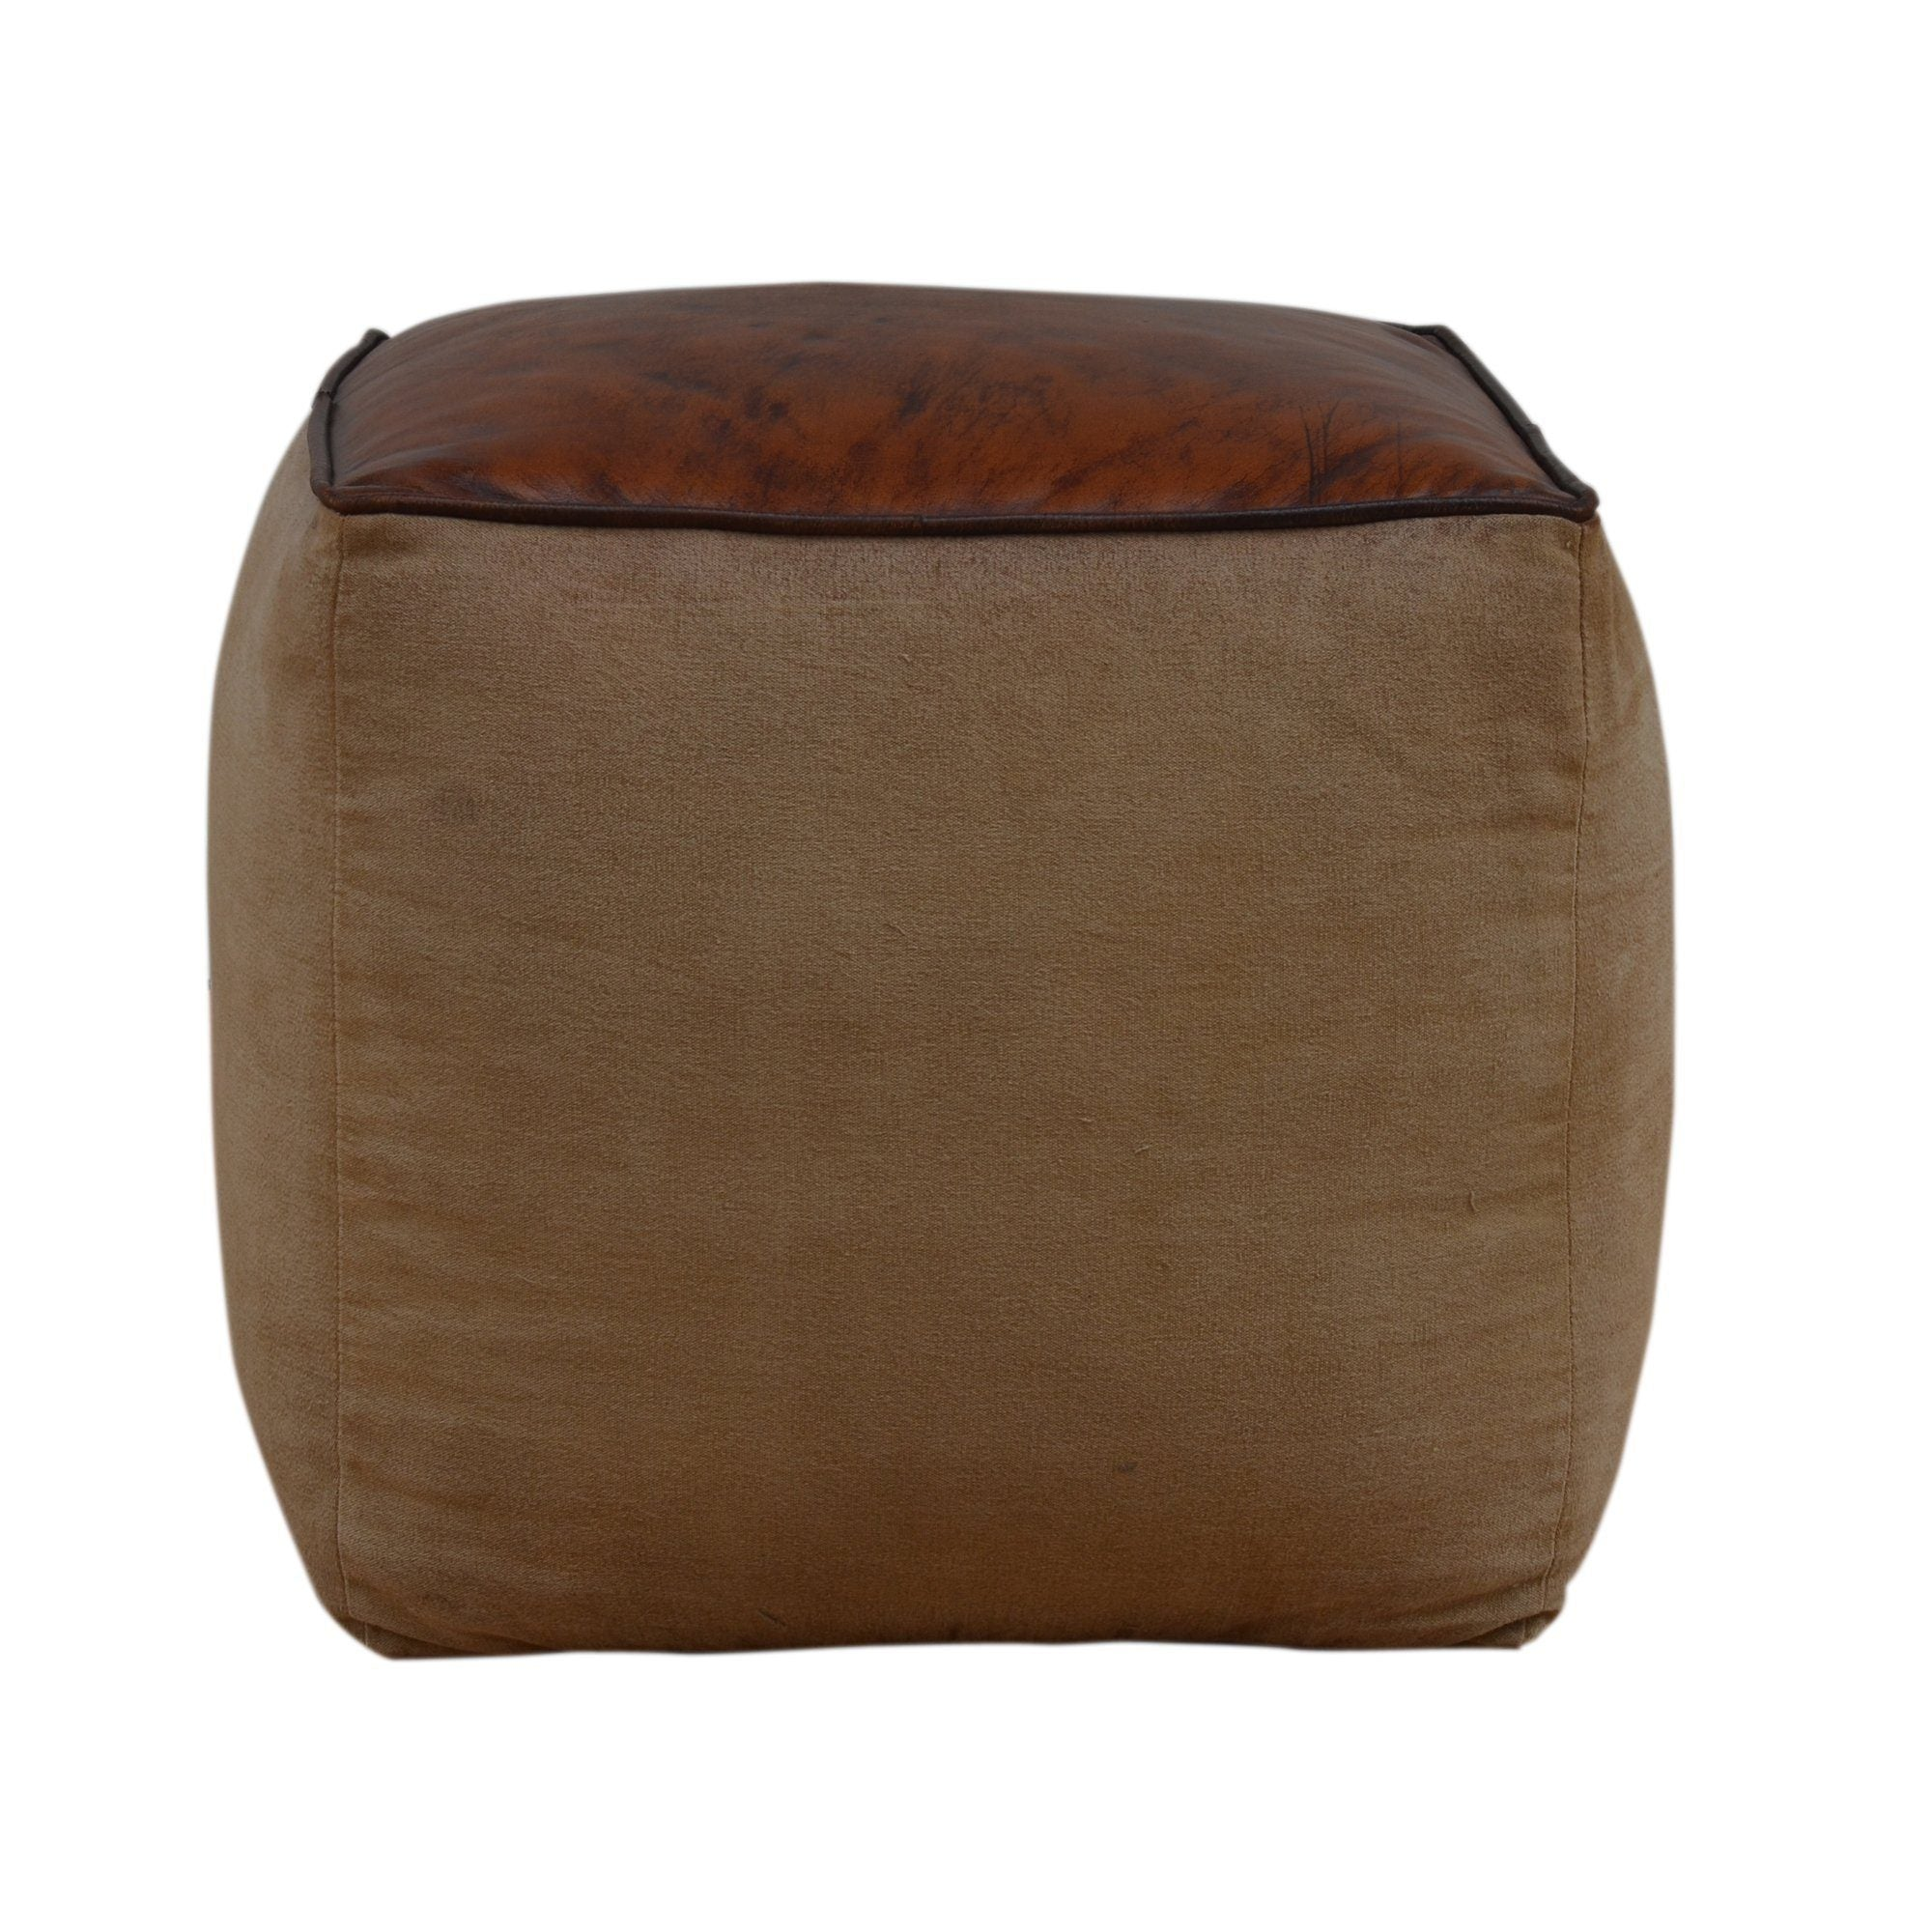 ottomans canvas leather philbee interiors collections ottoman square online polo charleston